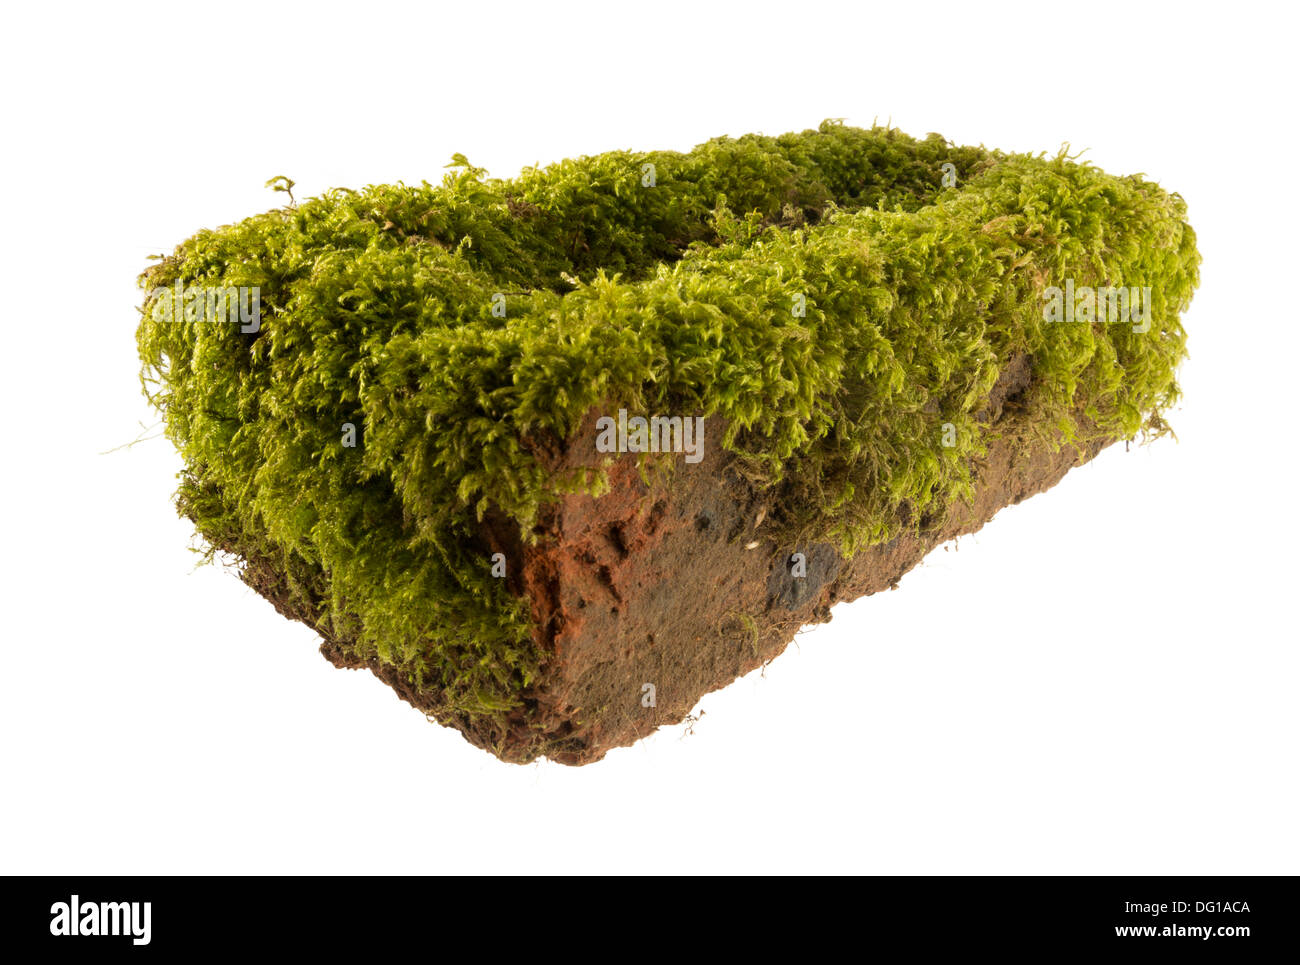 brick covered in moss - Stock Image